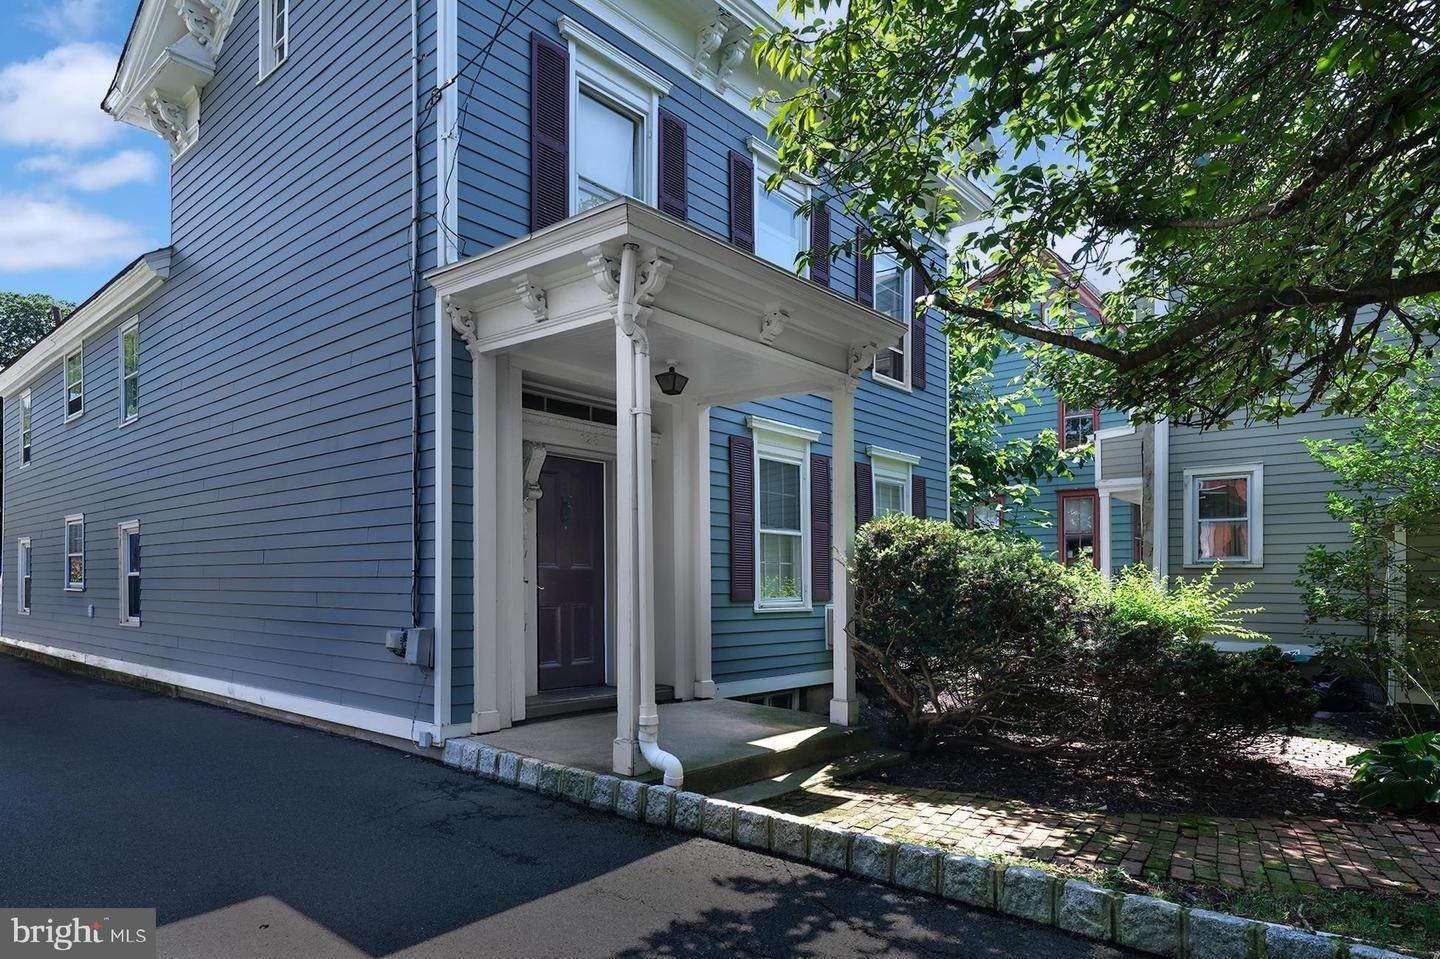 2. Detached House for Sale at 128 MAIN Street Flemington, New Jersey 08822 United States